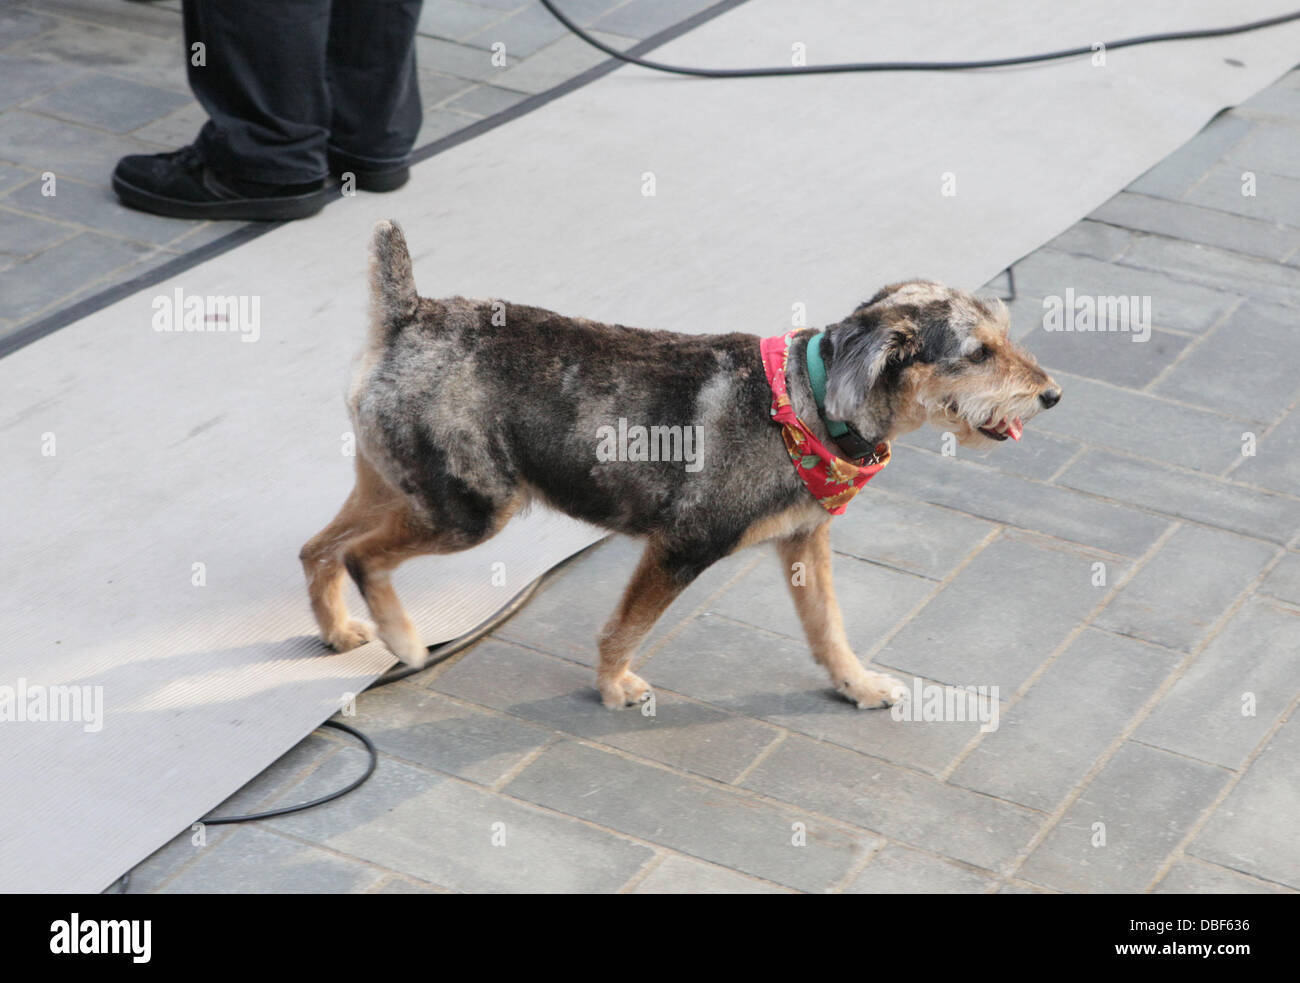 Meredith Vieira's dog Jasper  The 'Today Show' salutes Meredith Vieira's Last Day with NBC Network New York City, Stock Photo